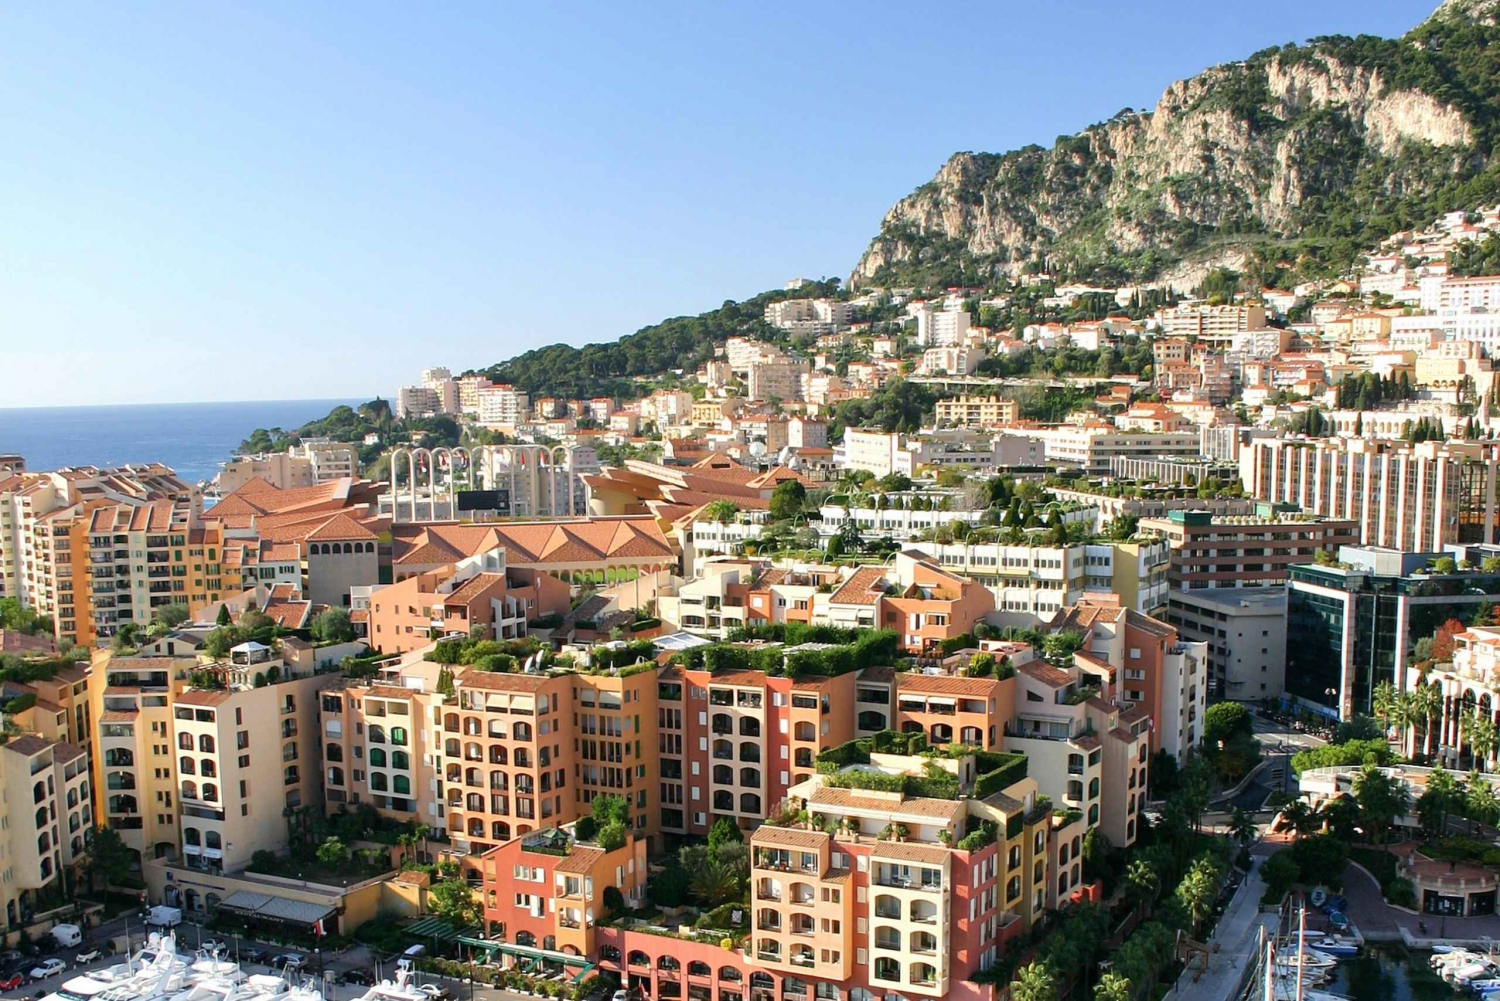 Monaco and Eze Half-Day Small Group Tour from Nice